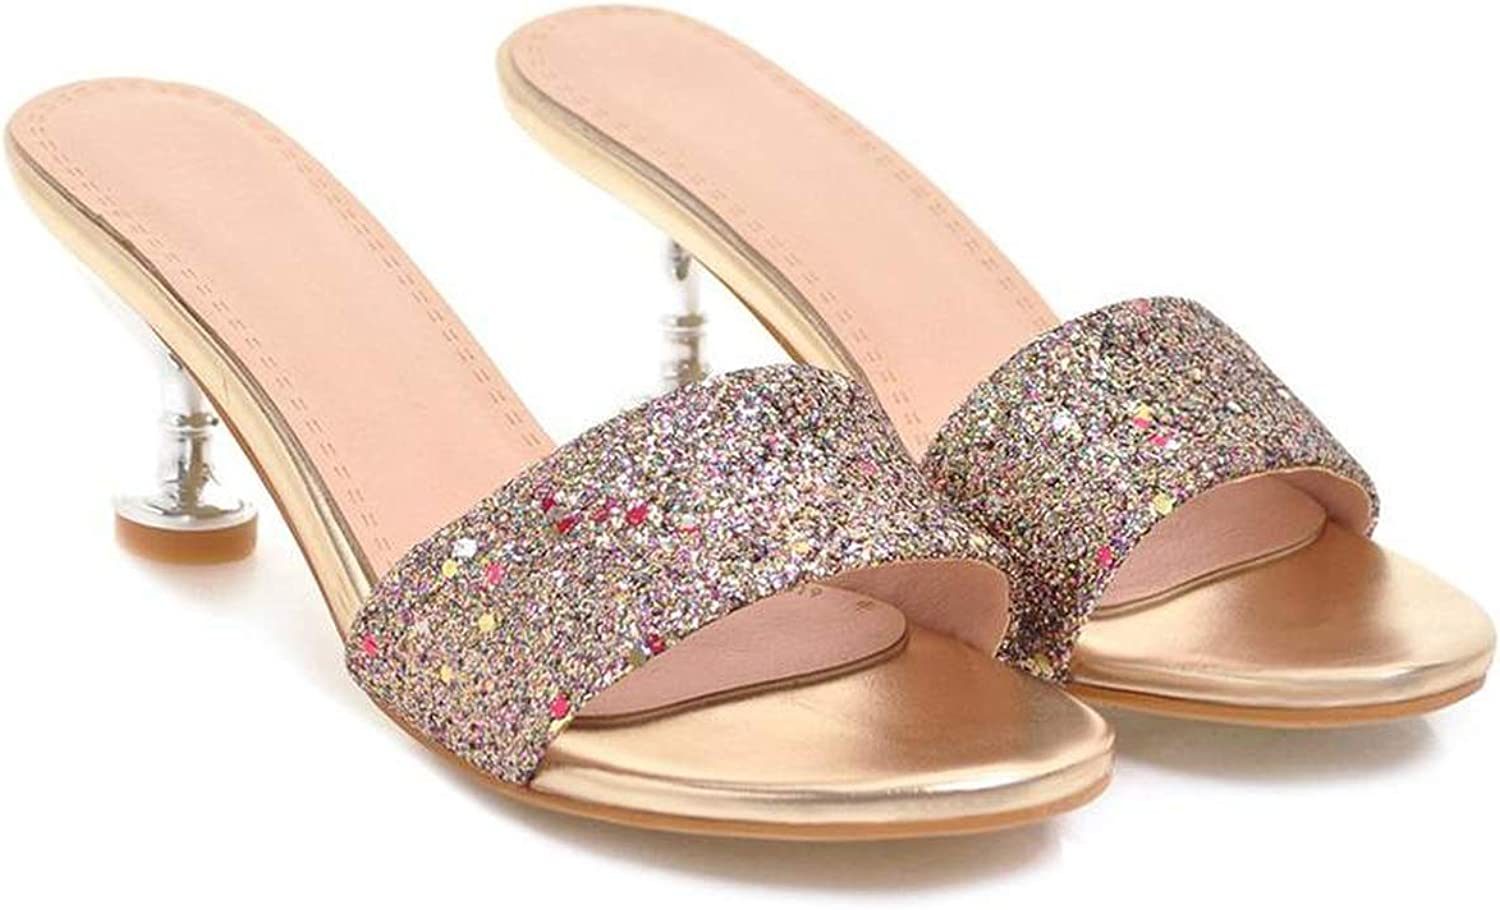 GEKX Women Slippers High Heels shoes Women Wedges shoes Open Toe shoes Slippers Female Mules Party Platform shoes